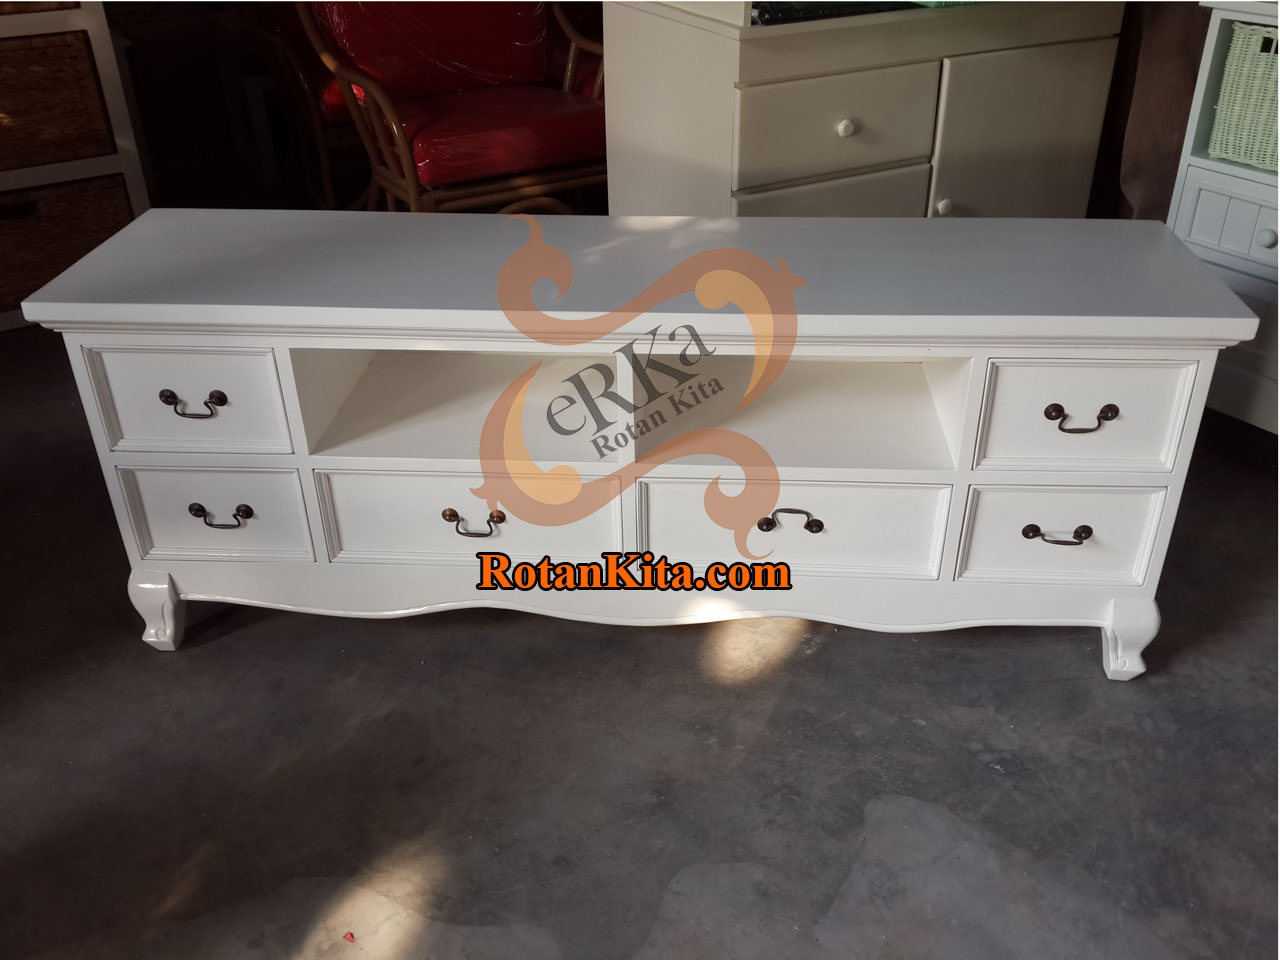 LRM153 A 3 copy Buffet | Code: LRM153